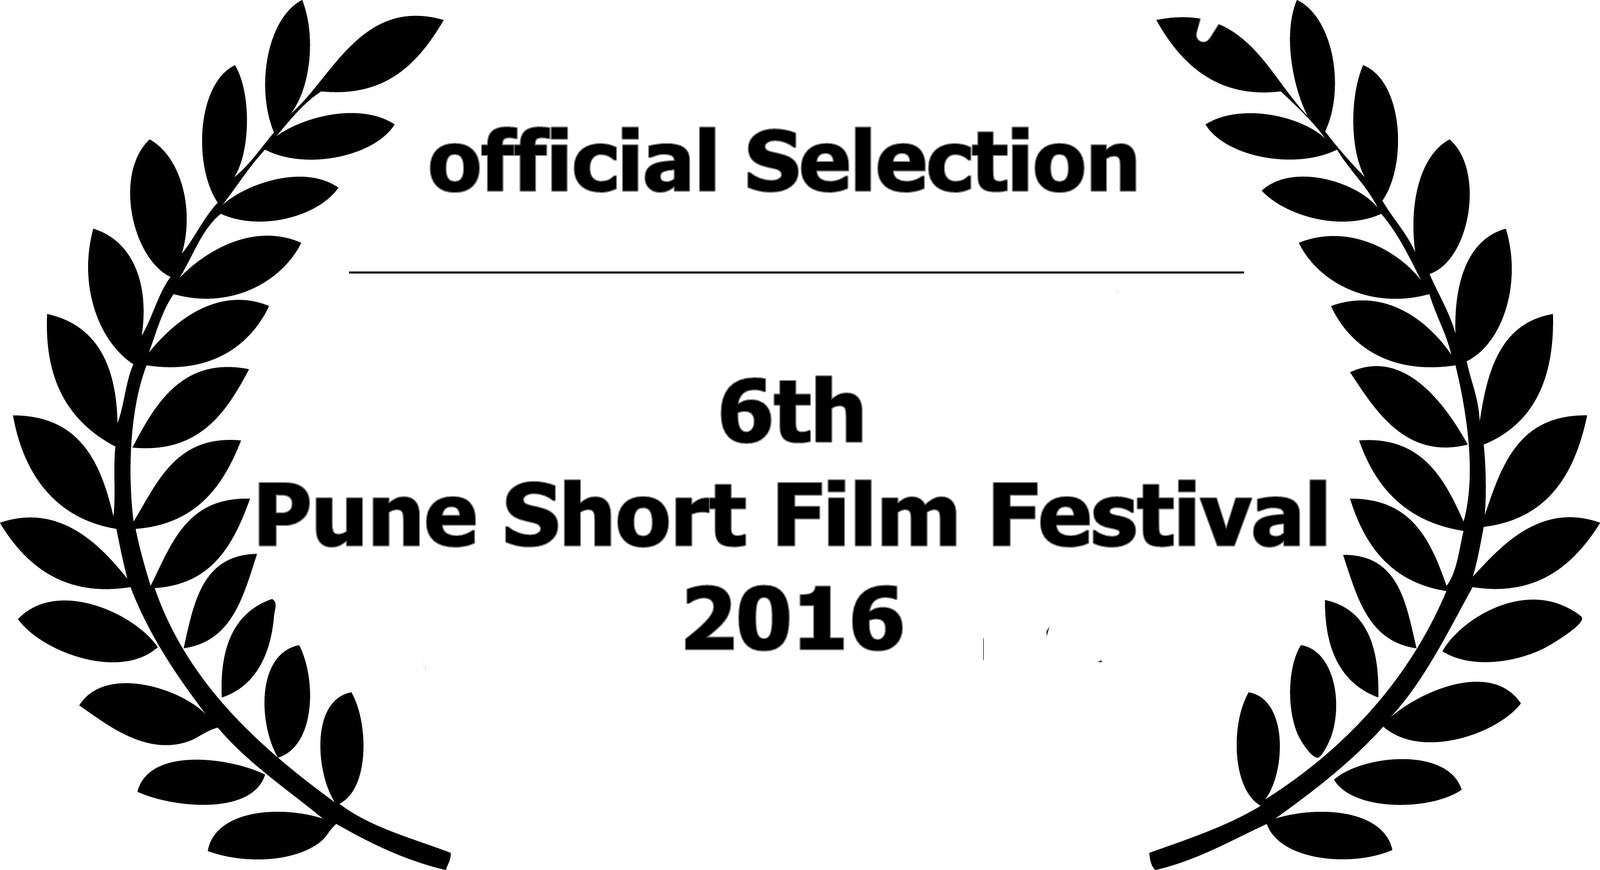 Pune Official Selection - LOGo